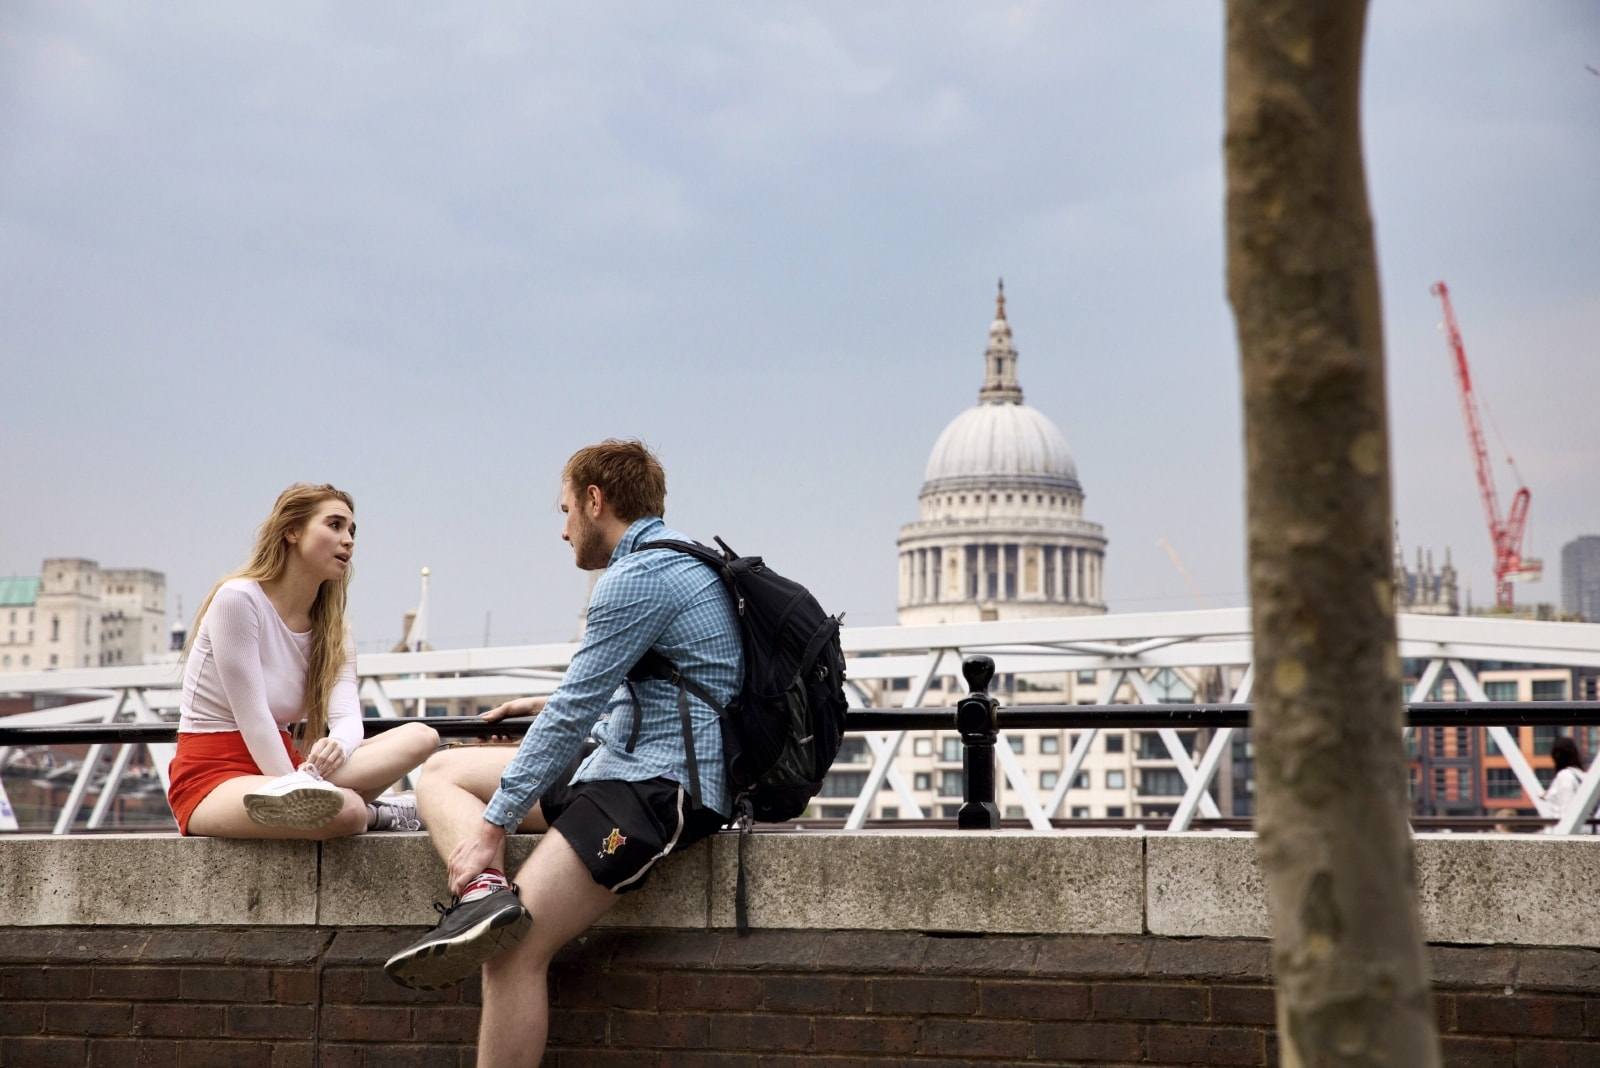 woman talking to man while sitting on balcony